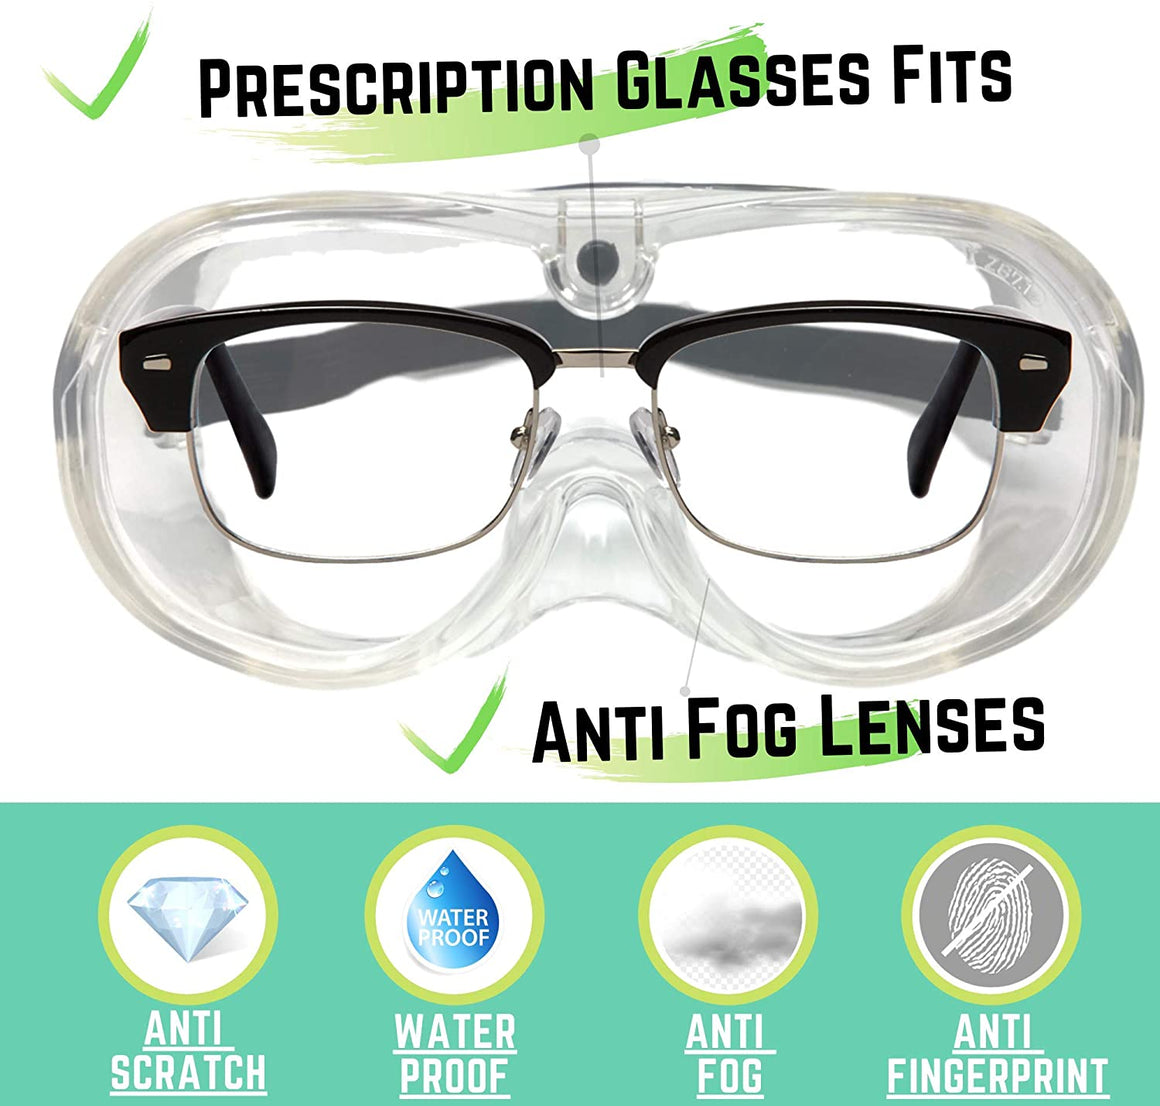 Safety Goggles - Lab Glasses - Medical Face Protection - Clear Lens Anti-Splash - Dust Proof Wearable Eyeglasses